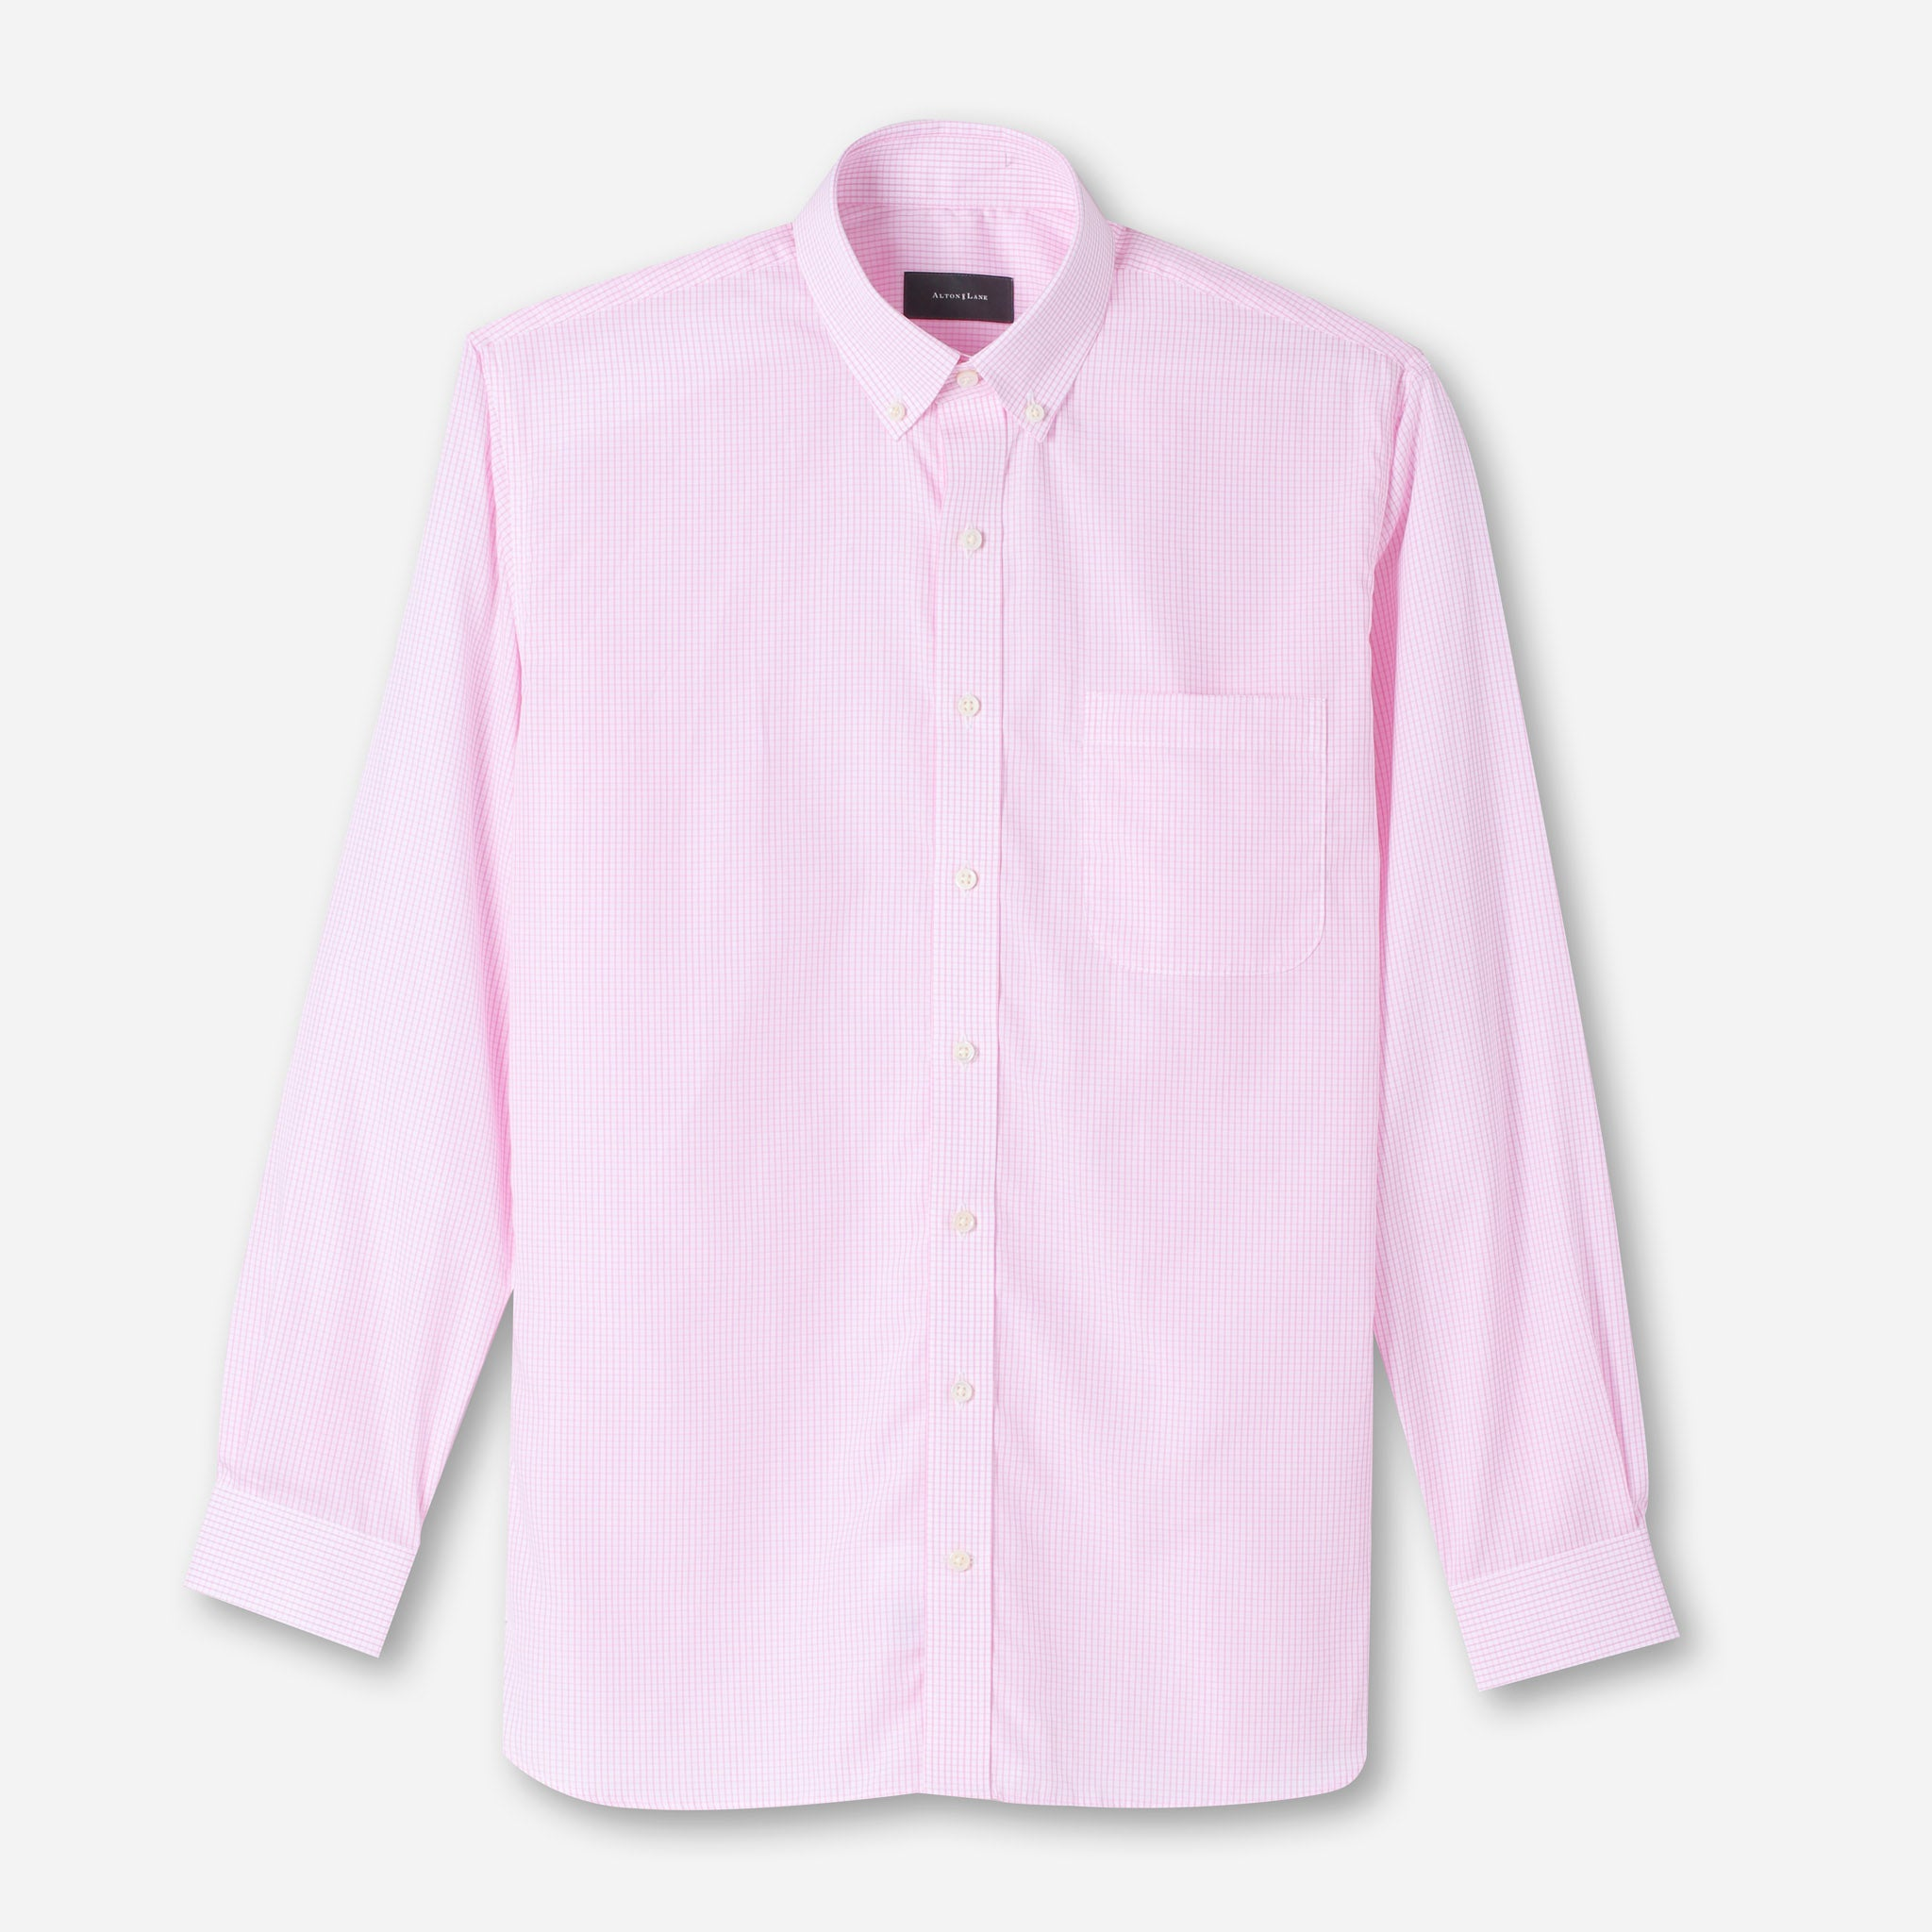 Mason Everyday Premium Shirt in Pink Grid Check